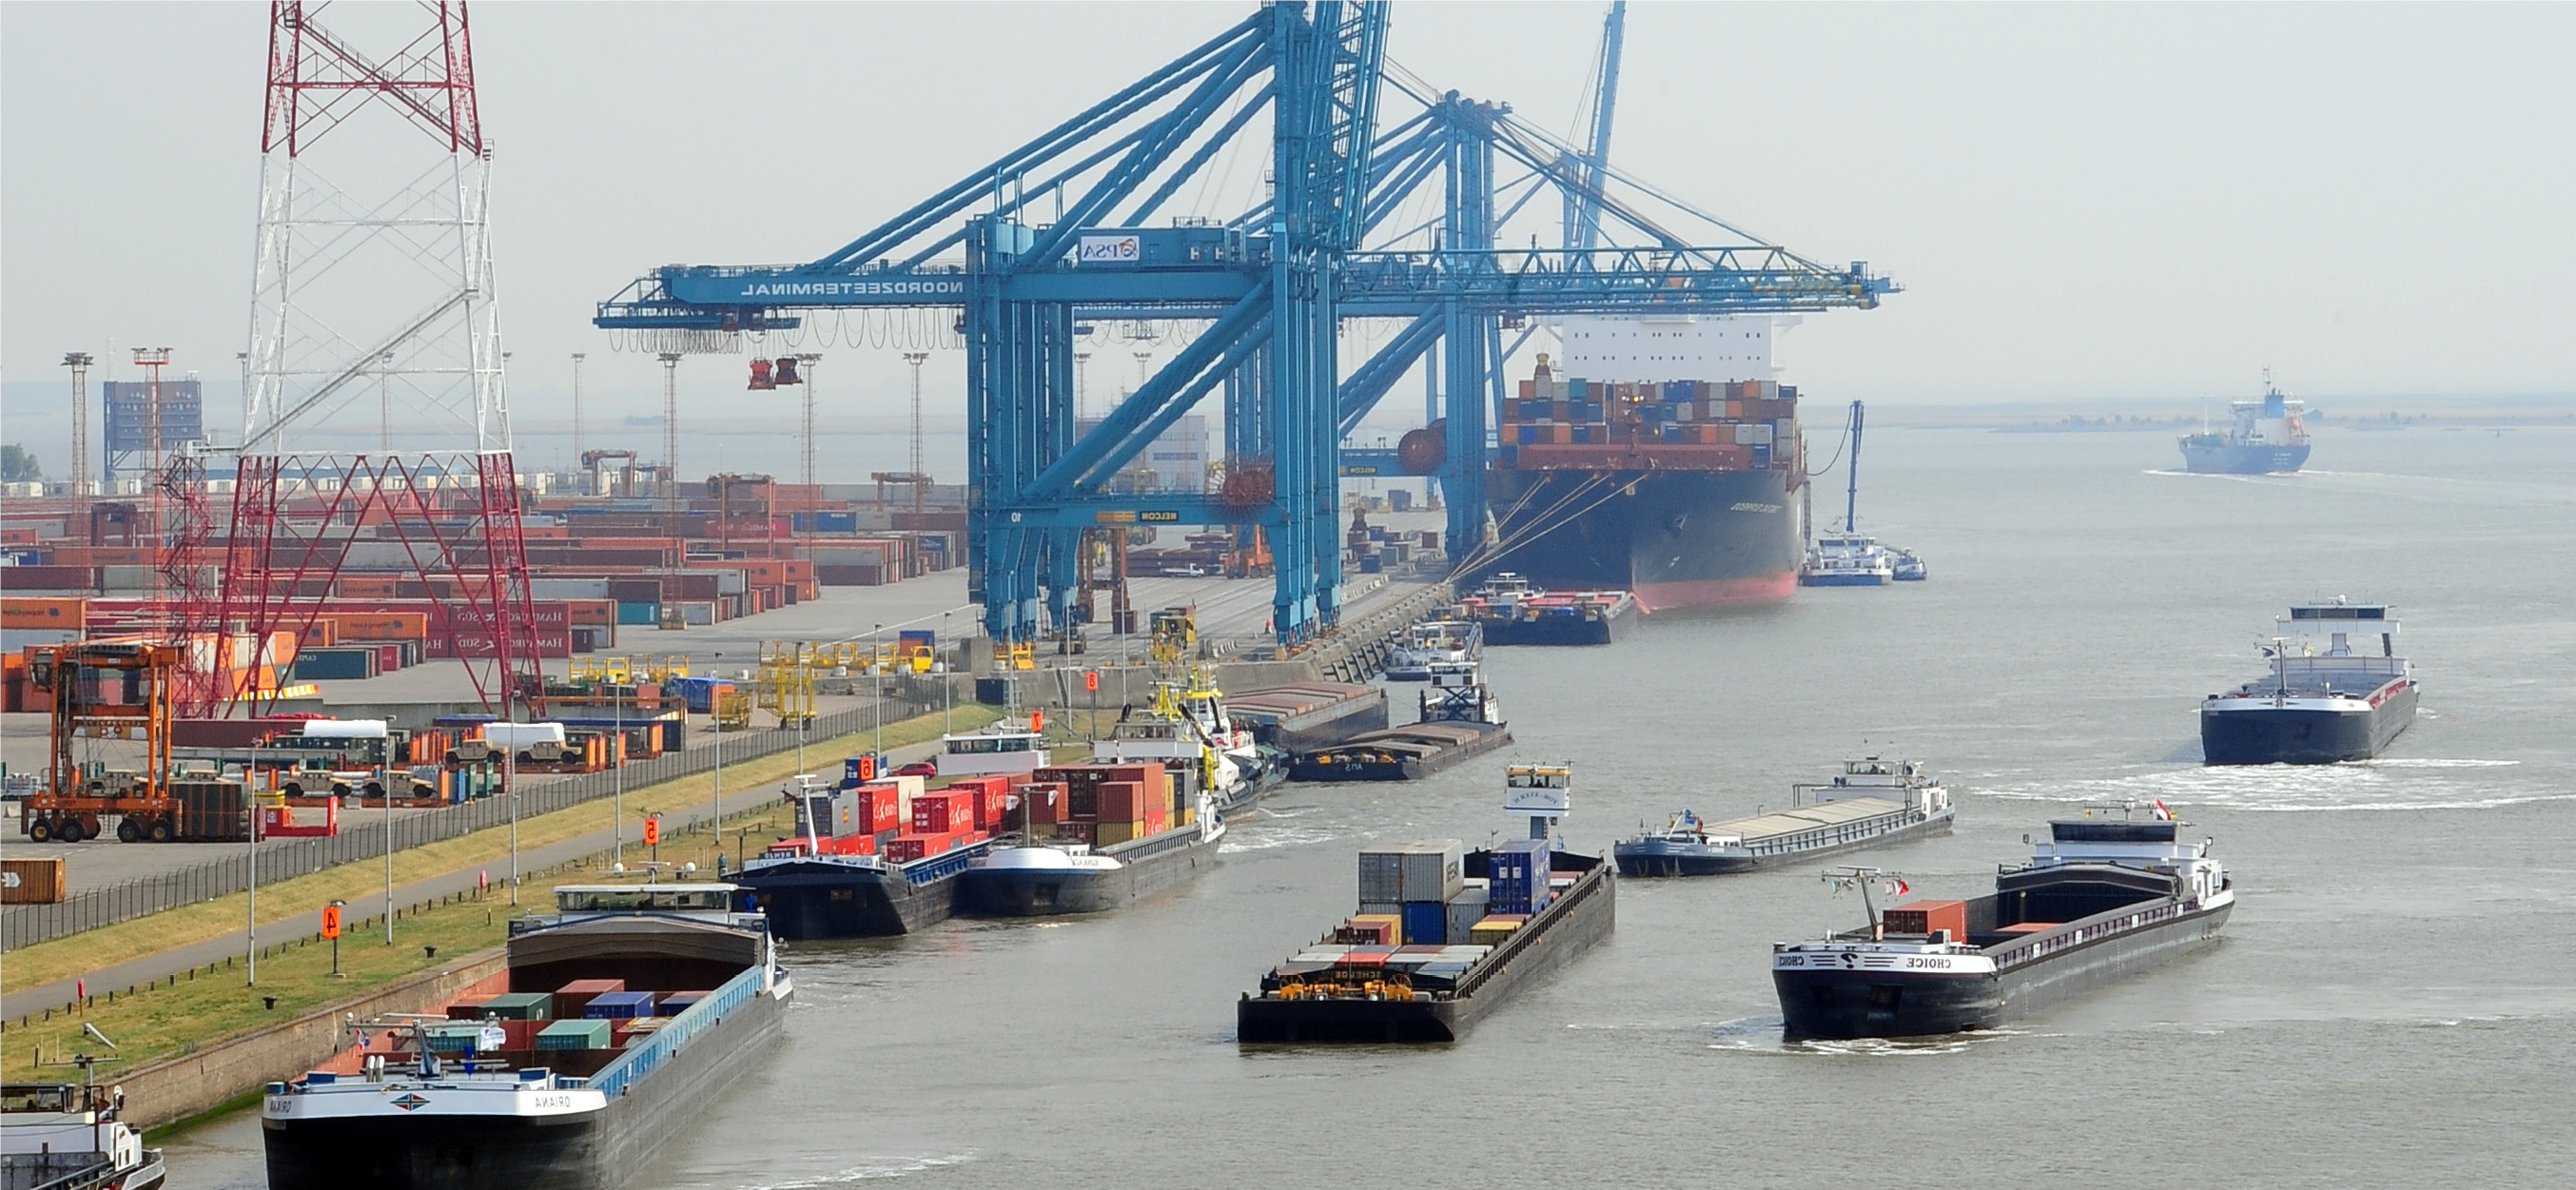 Urgent need to expand container capacity in the Port of Antwerp – Realy?